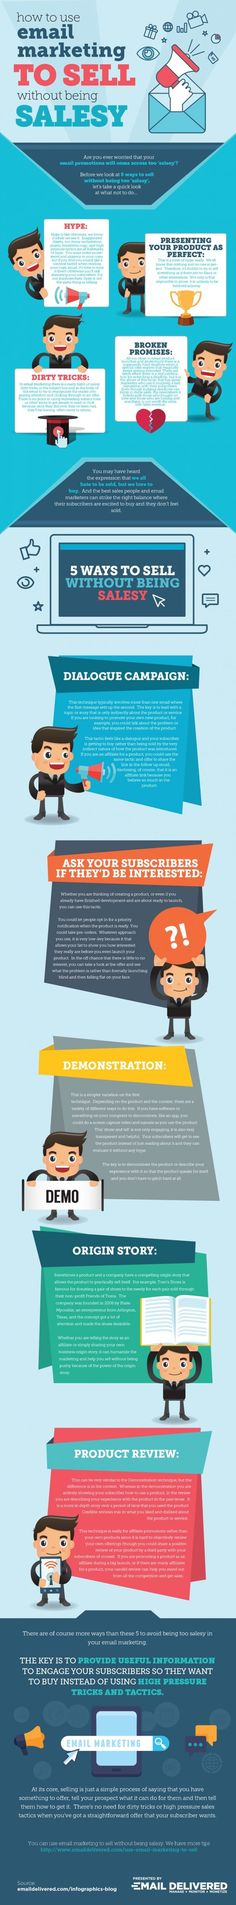 How to use #email #marketing